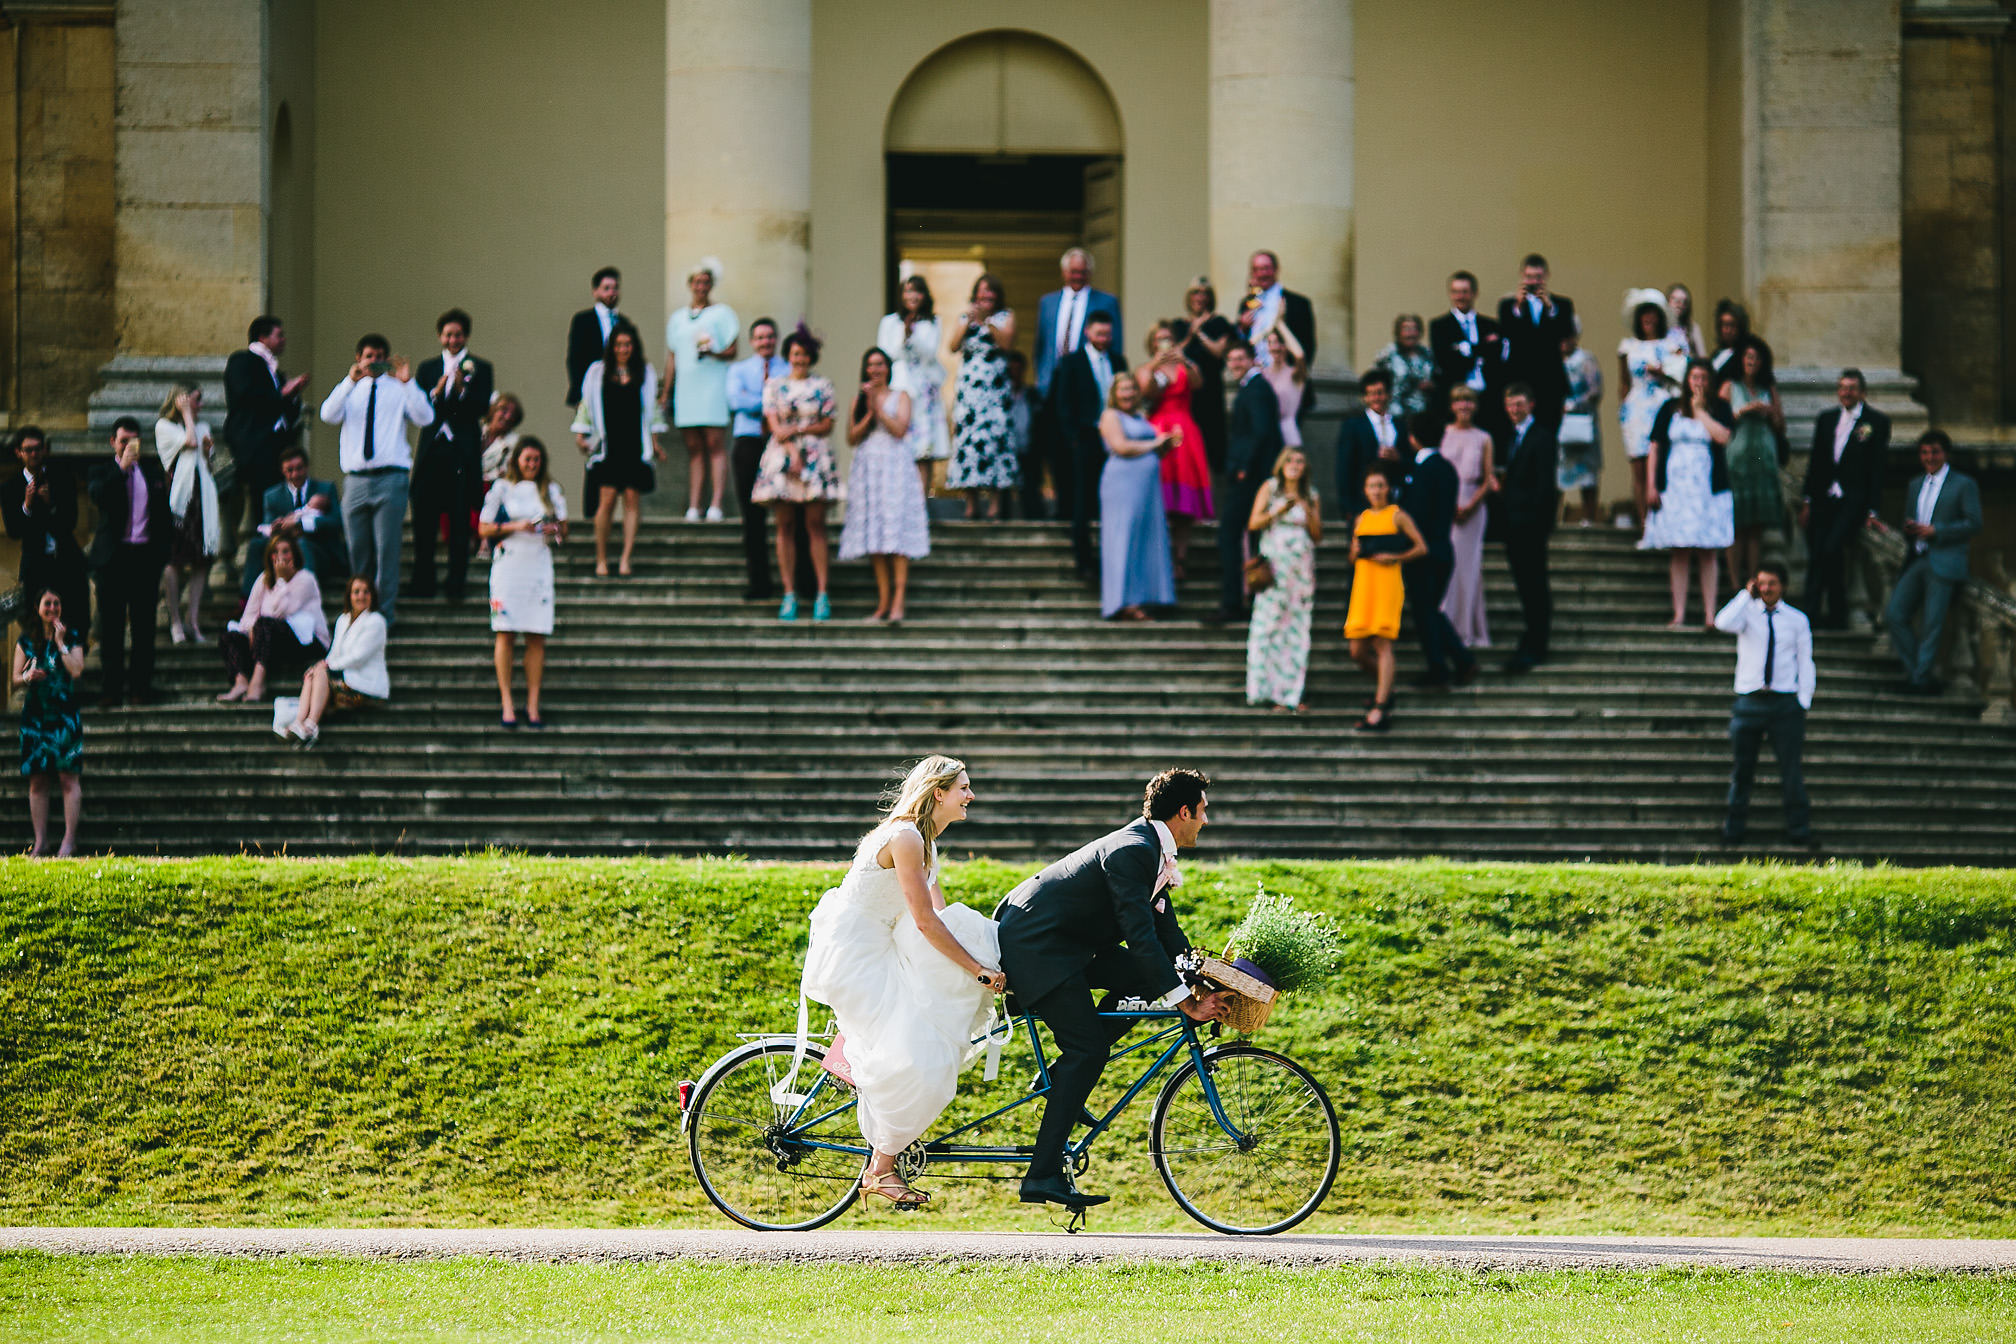 Bride and Groom cycling away on a tandem